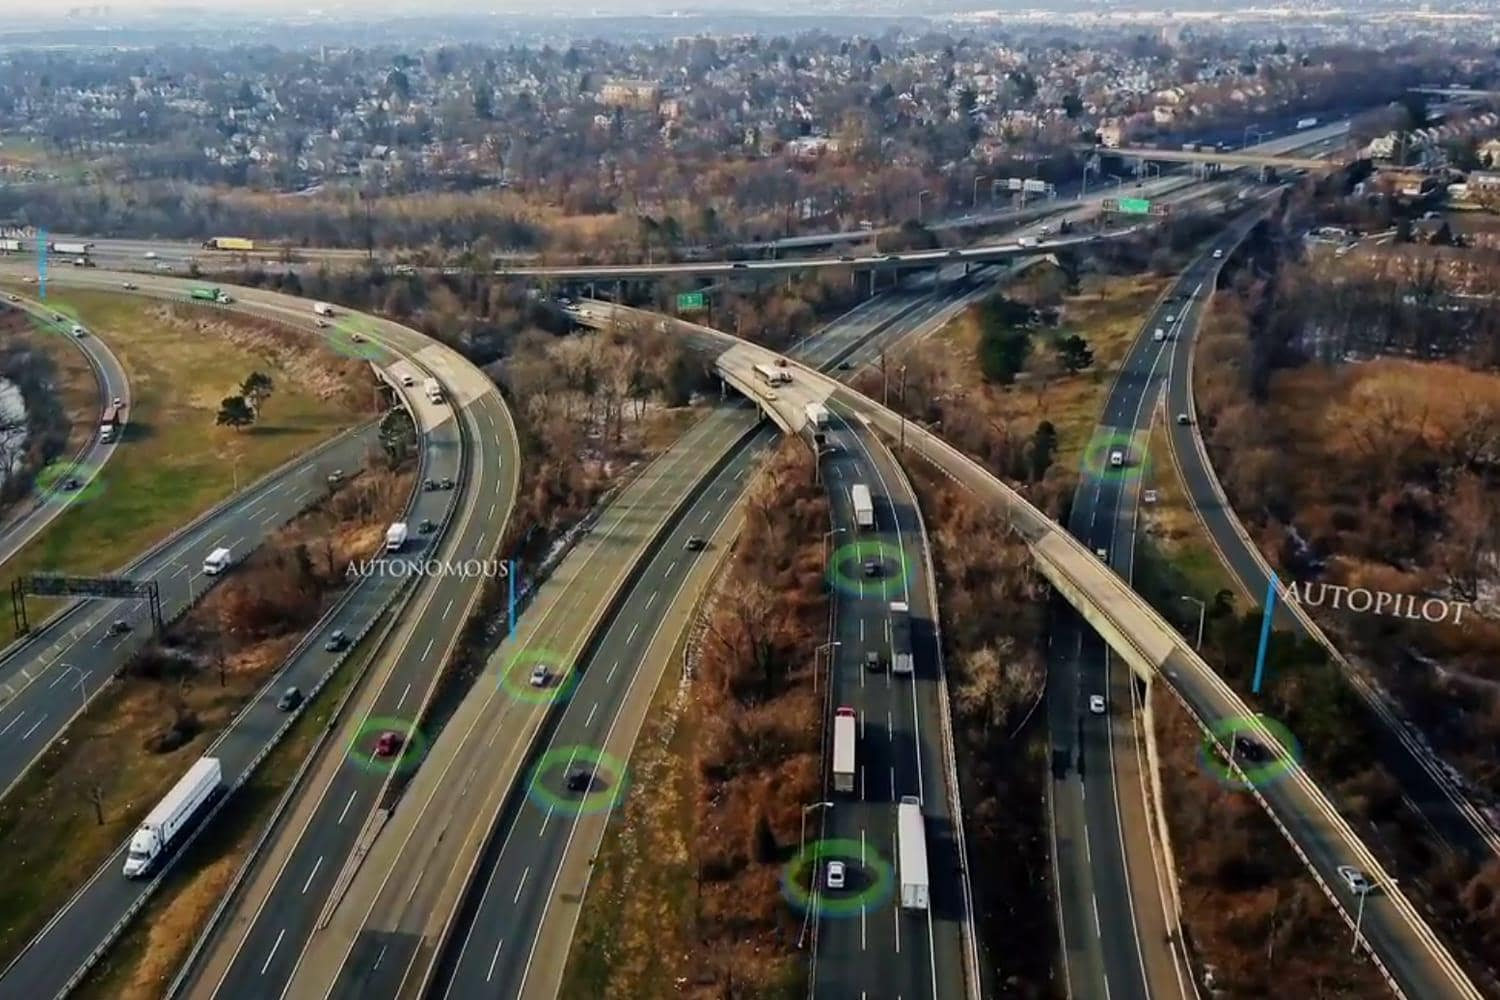 Overhead shot of self-driving cars on highway